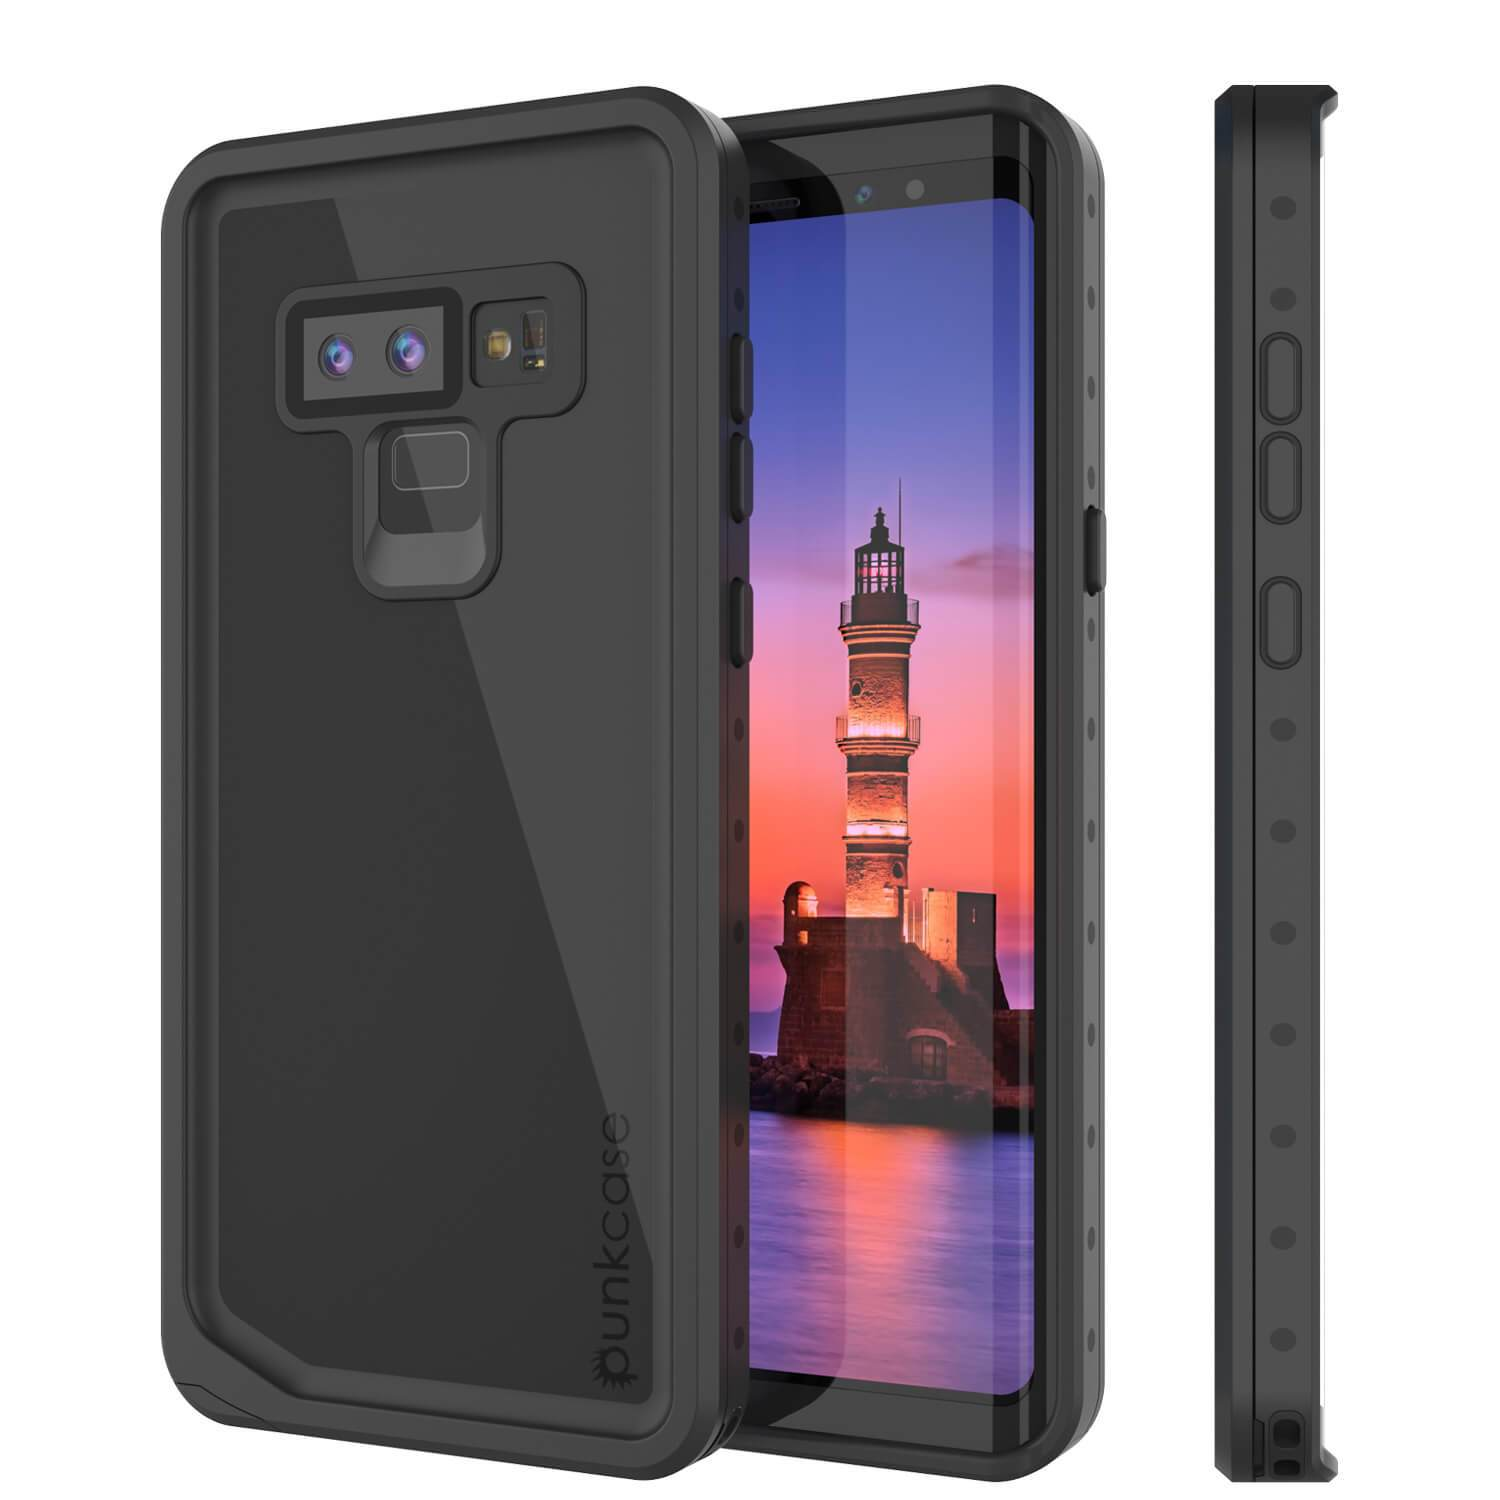 Galaxy Note 9 Waterproof Case PunkCase StudStar [Black] Thin 6.6ft